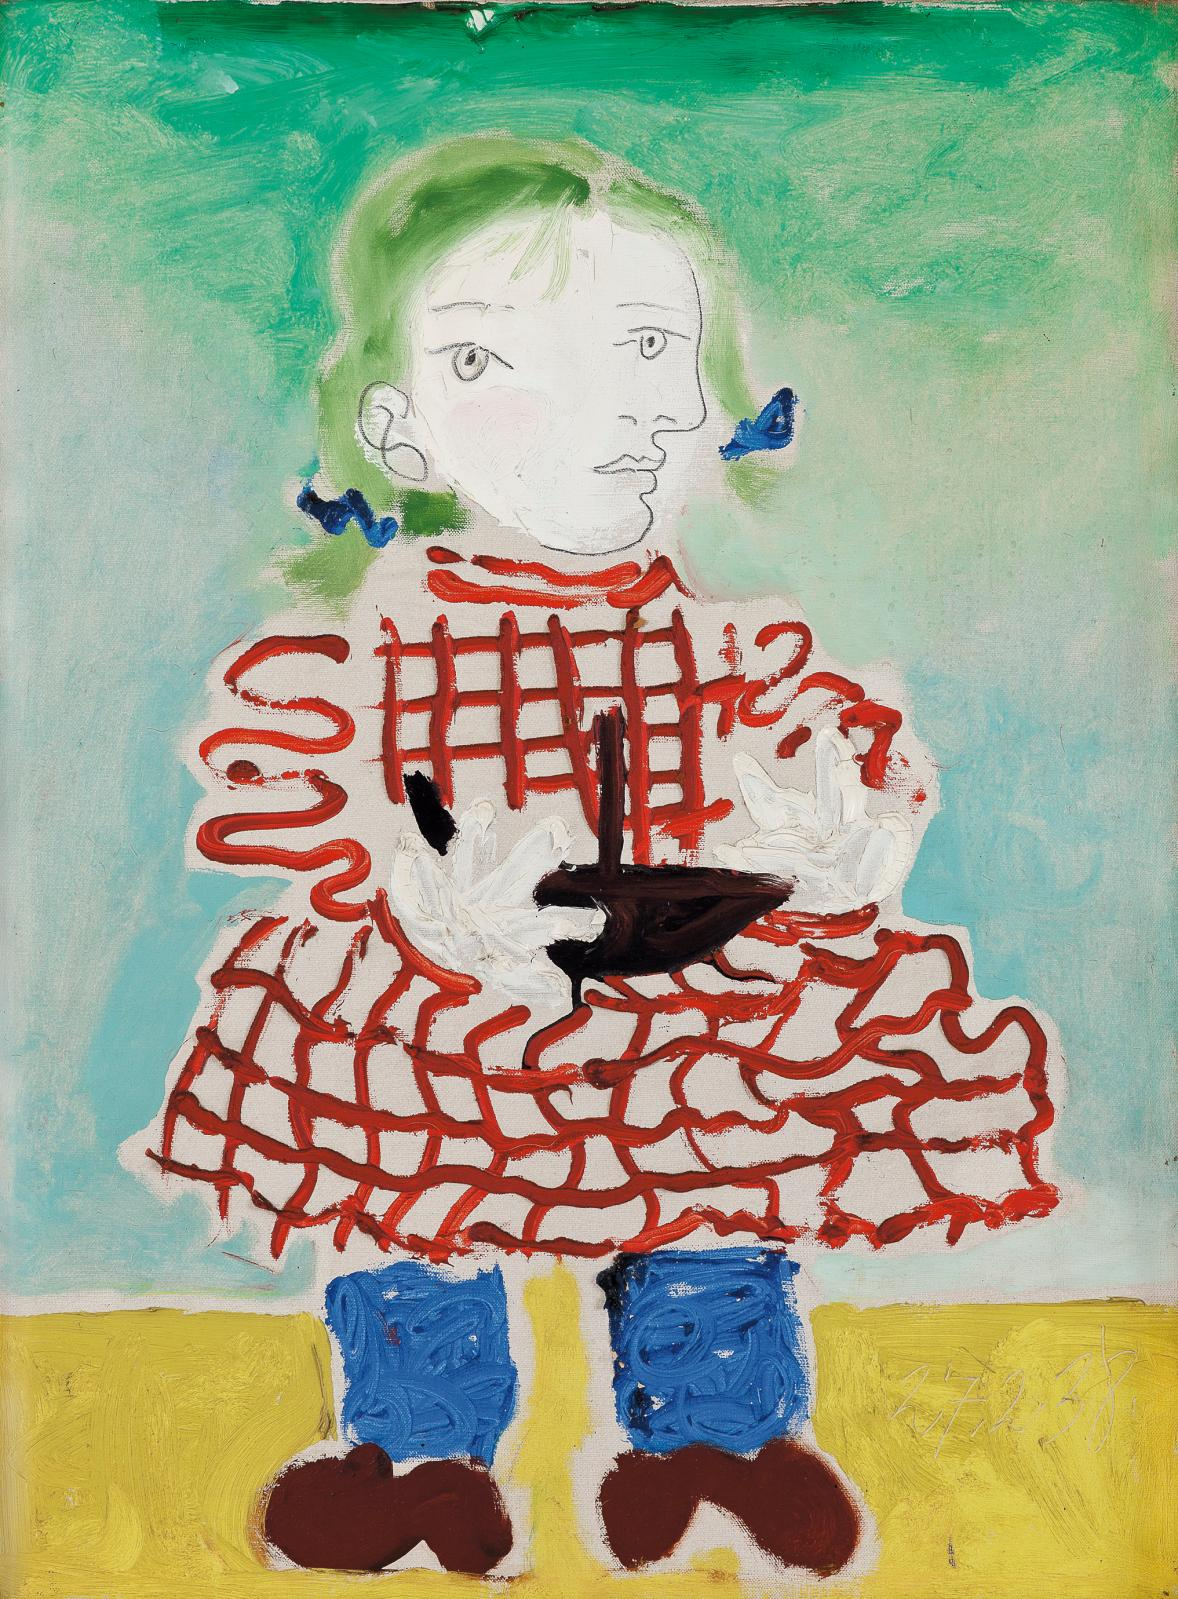 """Pablo Picasso (1881-1973), """"Maya au tablier"""", 1938. Picasso's daughter was aged 3 at the time."""